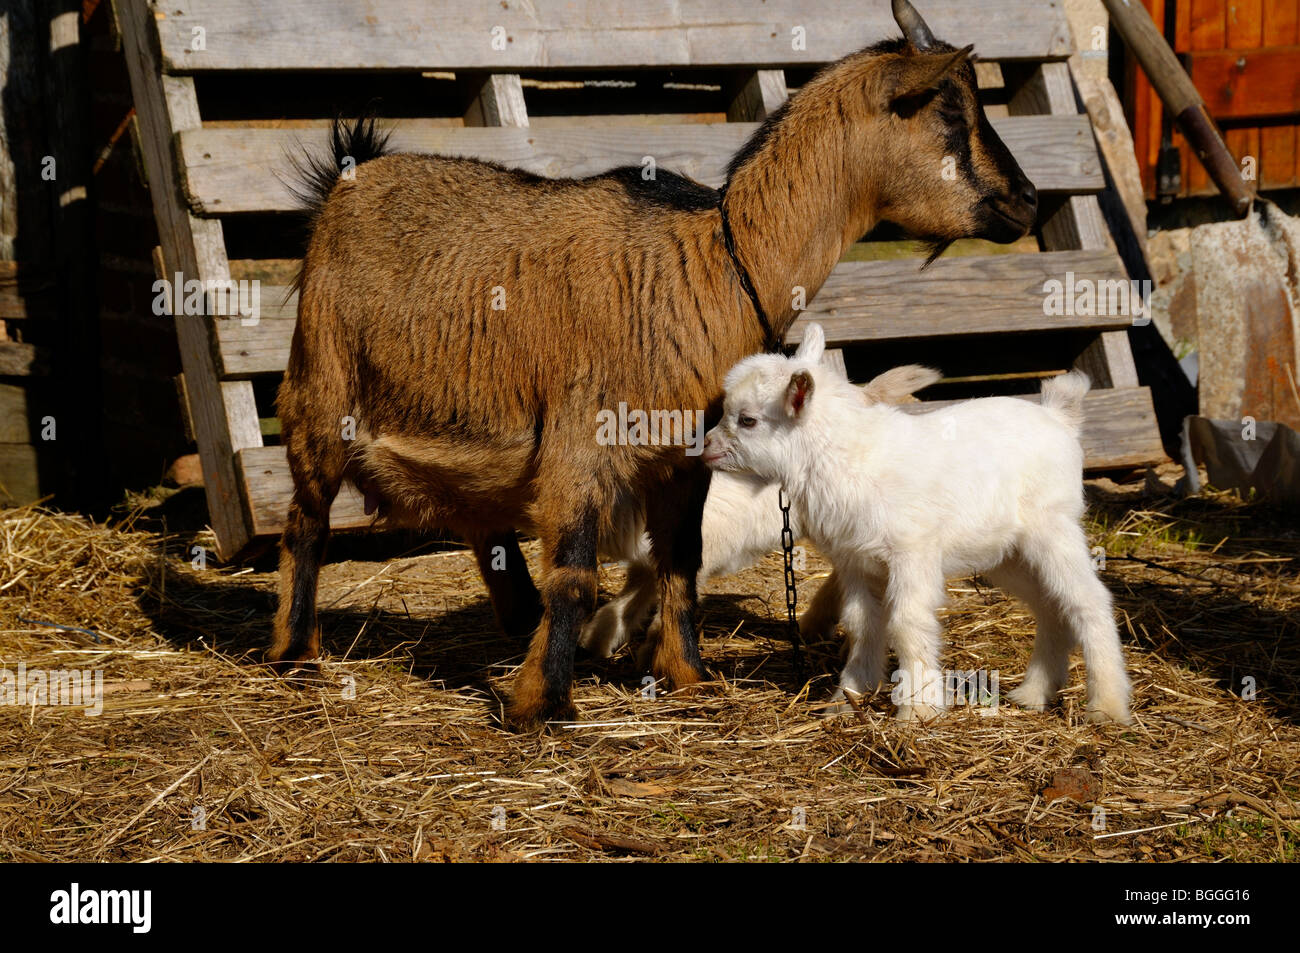 Stock photo of a mother Pygmy goat with her kid. - Stock Image